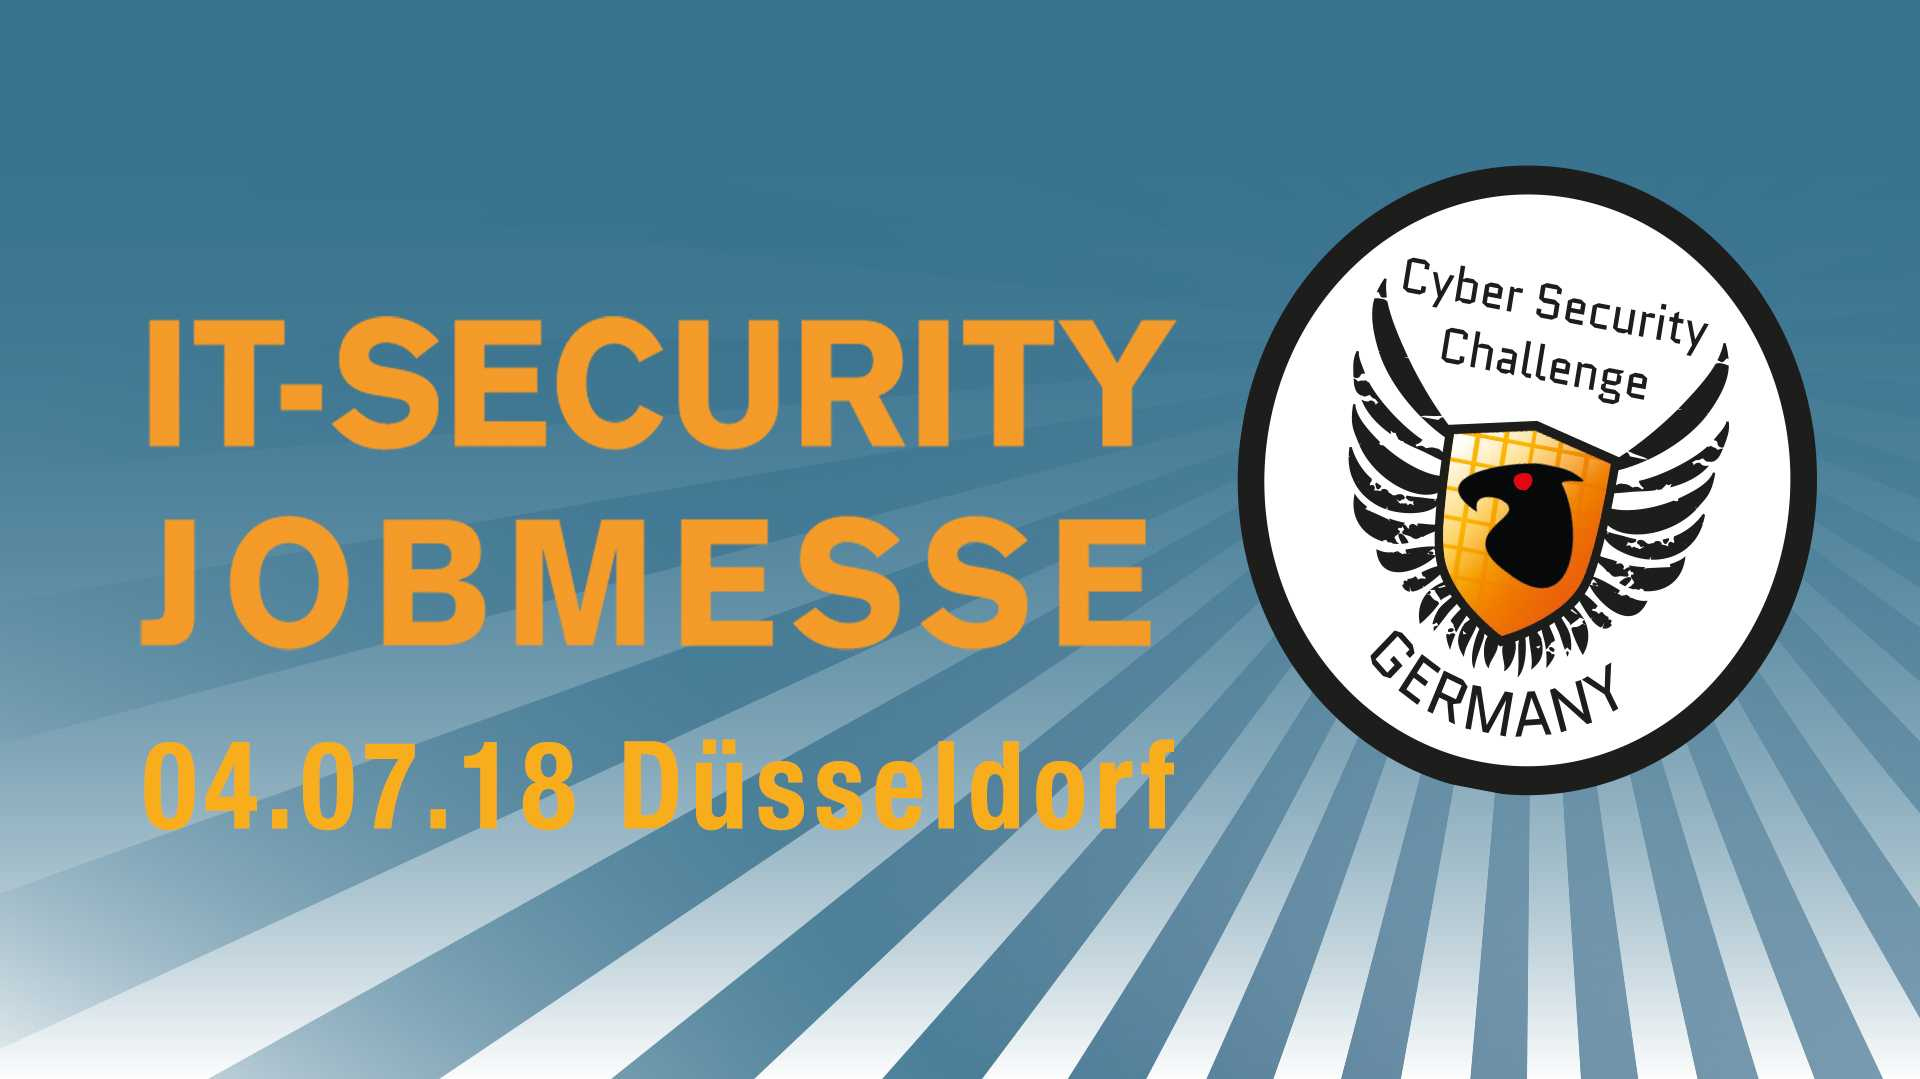 Cyber Security Challenge Germany 2018: Jobmesse für IT-Security-Talente